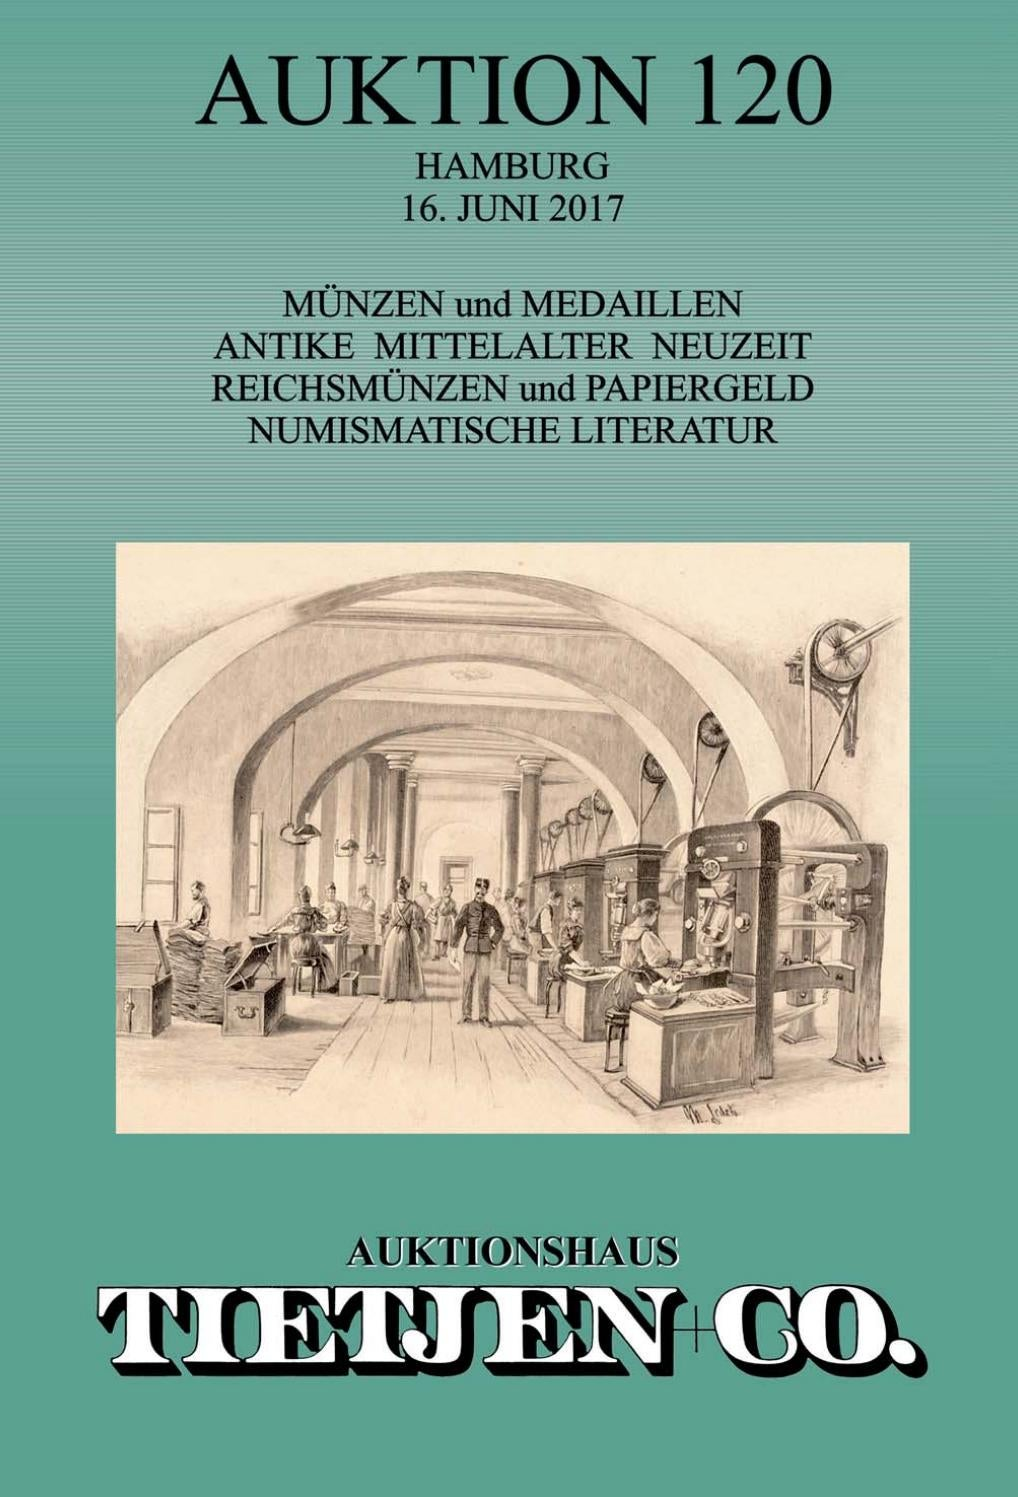 Tietjenco Auction 120 By Auktionshaus Tietjenco Issuu